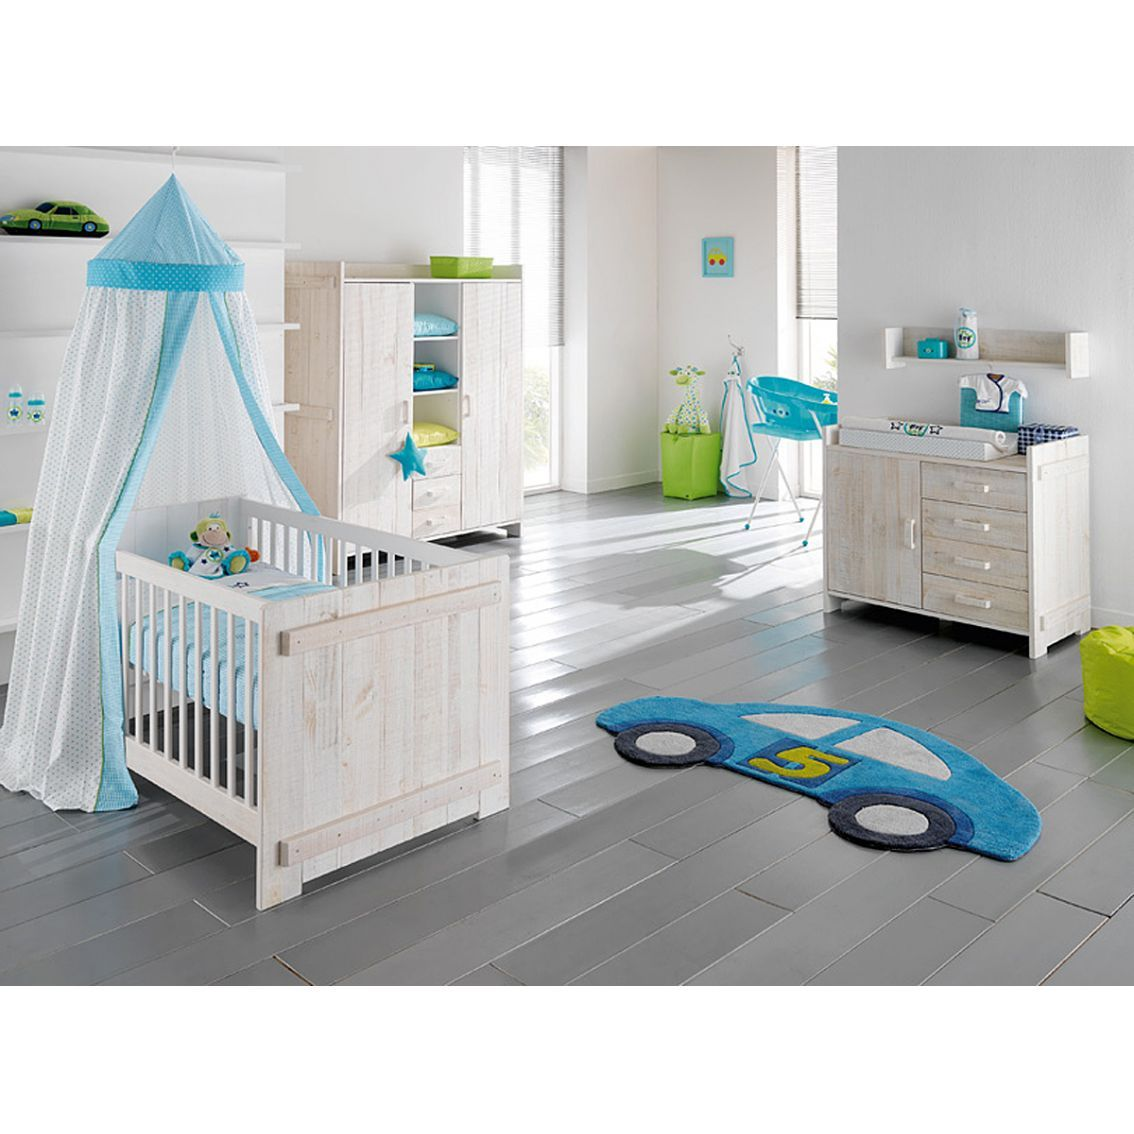 Cheap Baby Furniture Europe Baby Jelle White Nursery Furniture Set Ond Day